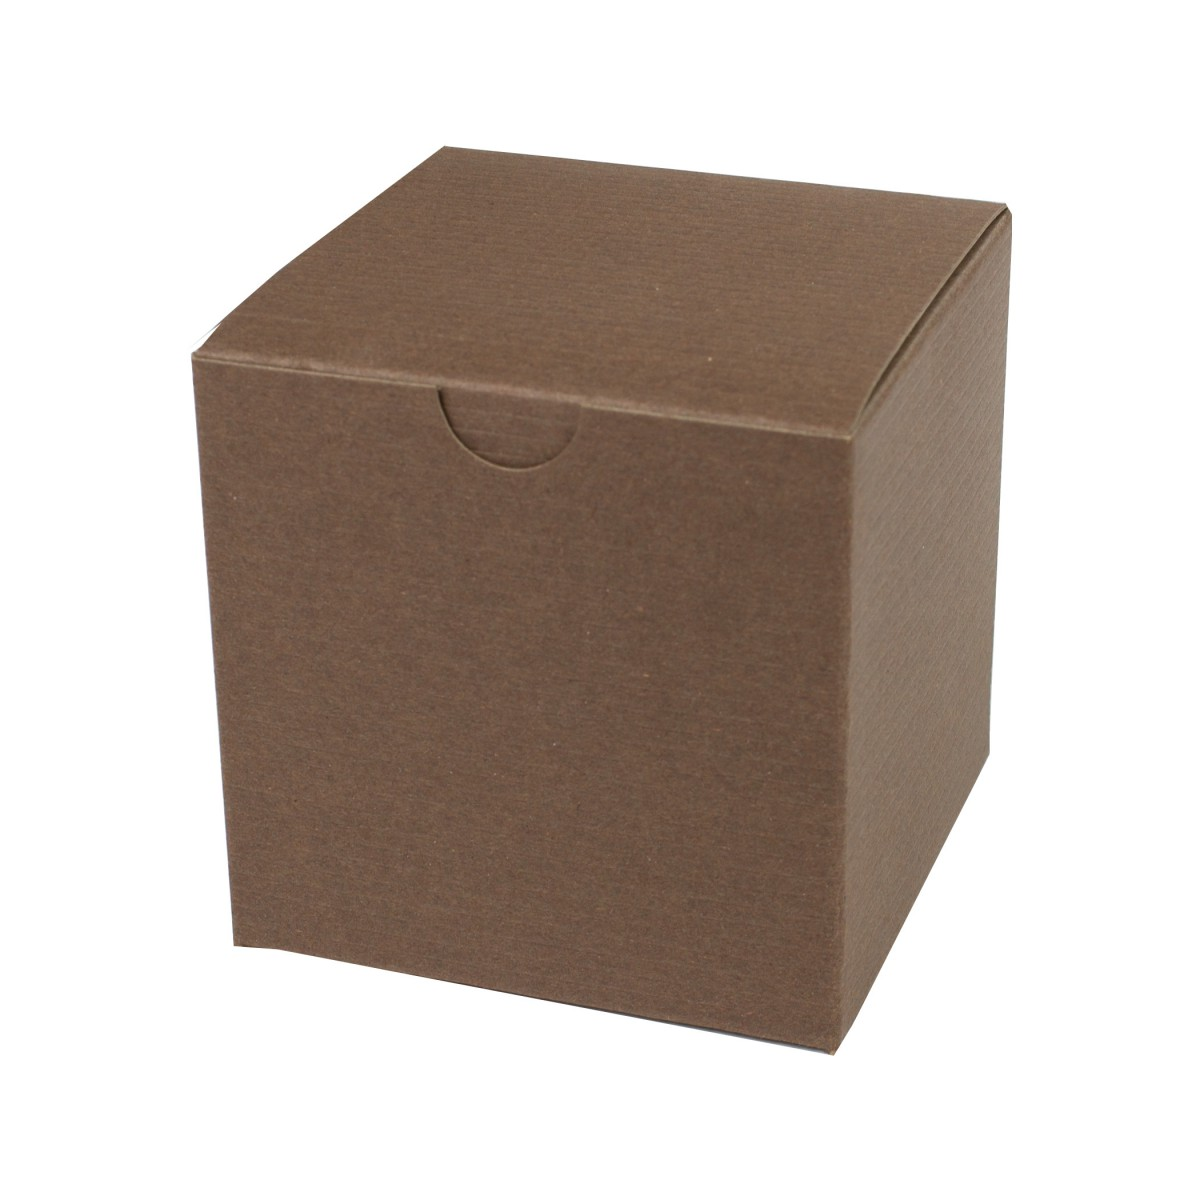 3 x 3 x 3 COCOA TINTED TUCK-TOP GIFT BOXES